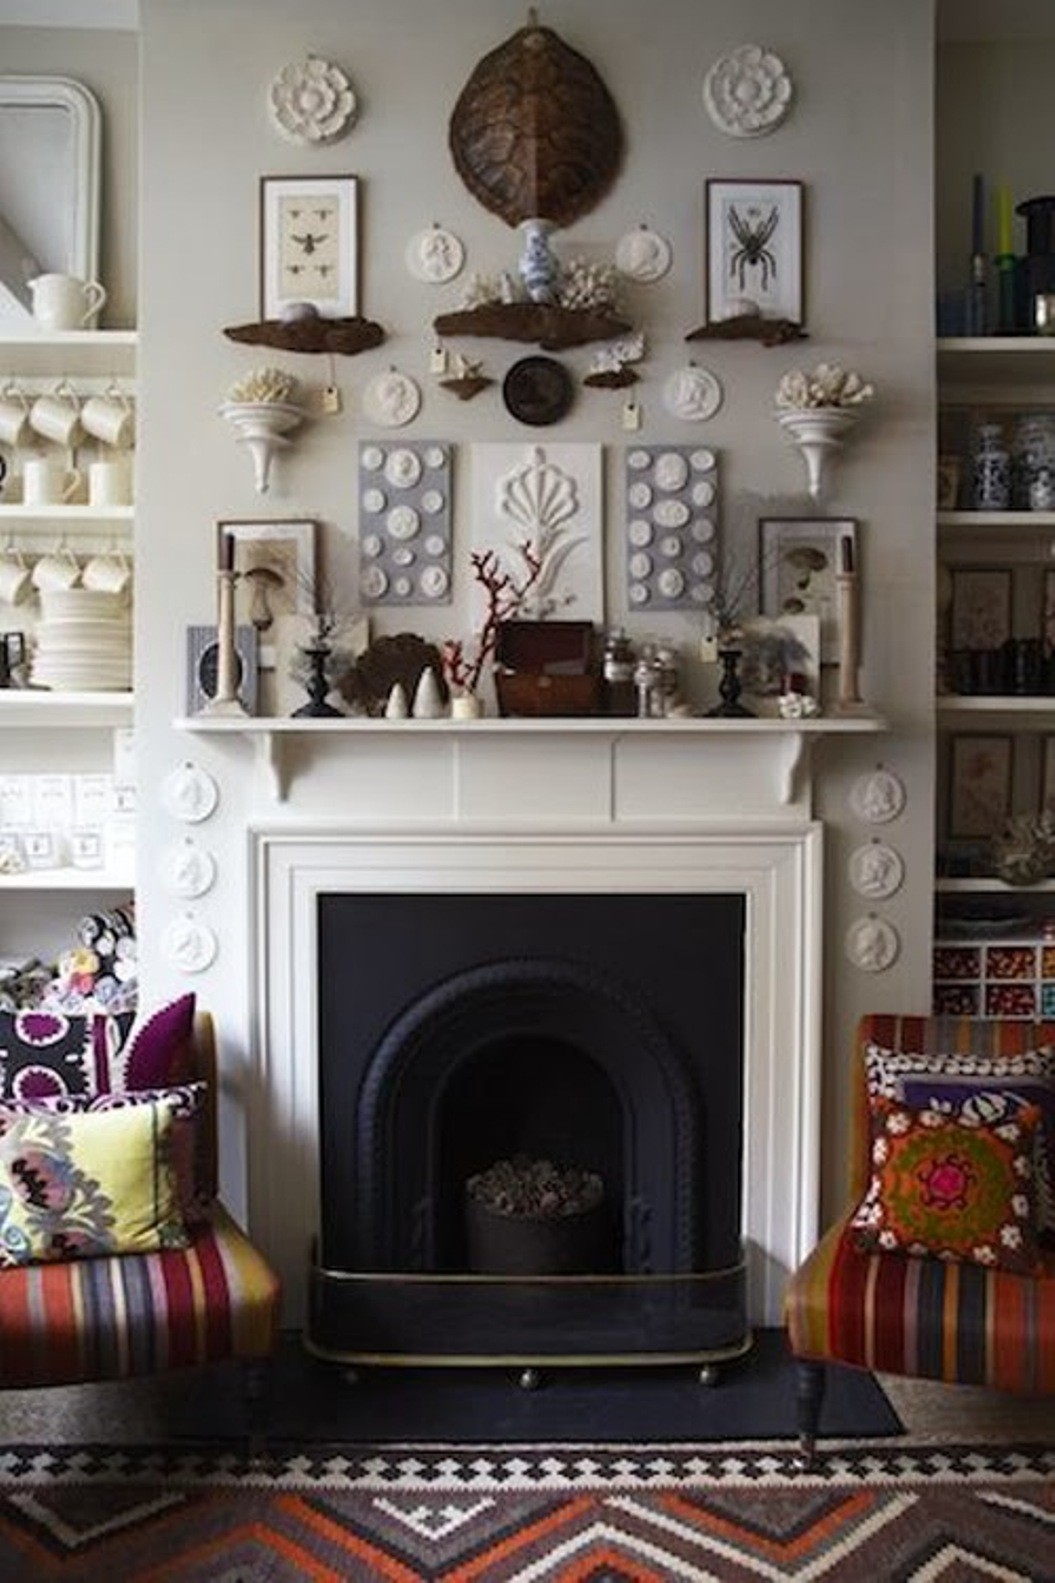 Decorating Ideas Wall Above Fireplace : How to decorate above a fireplace design ideas